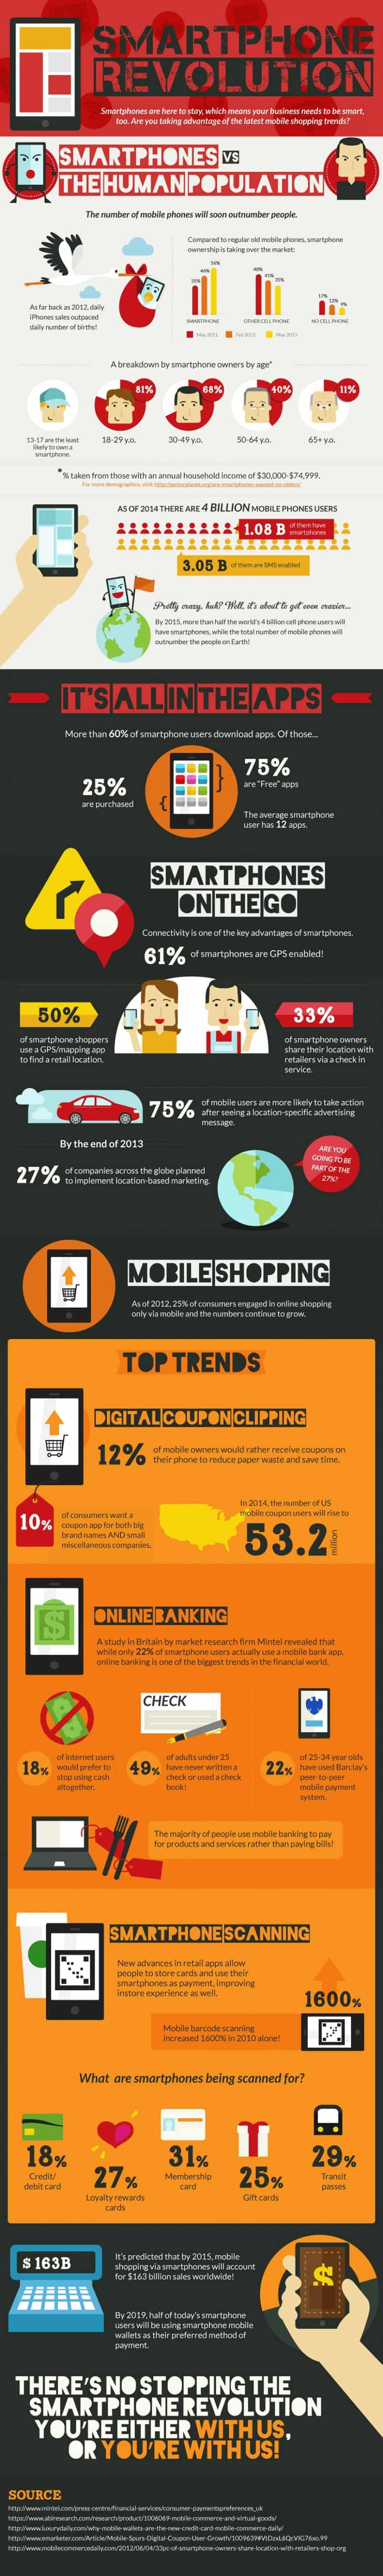 Smartphone Revolution - Investing in Mobile Content Strategy